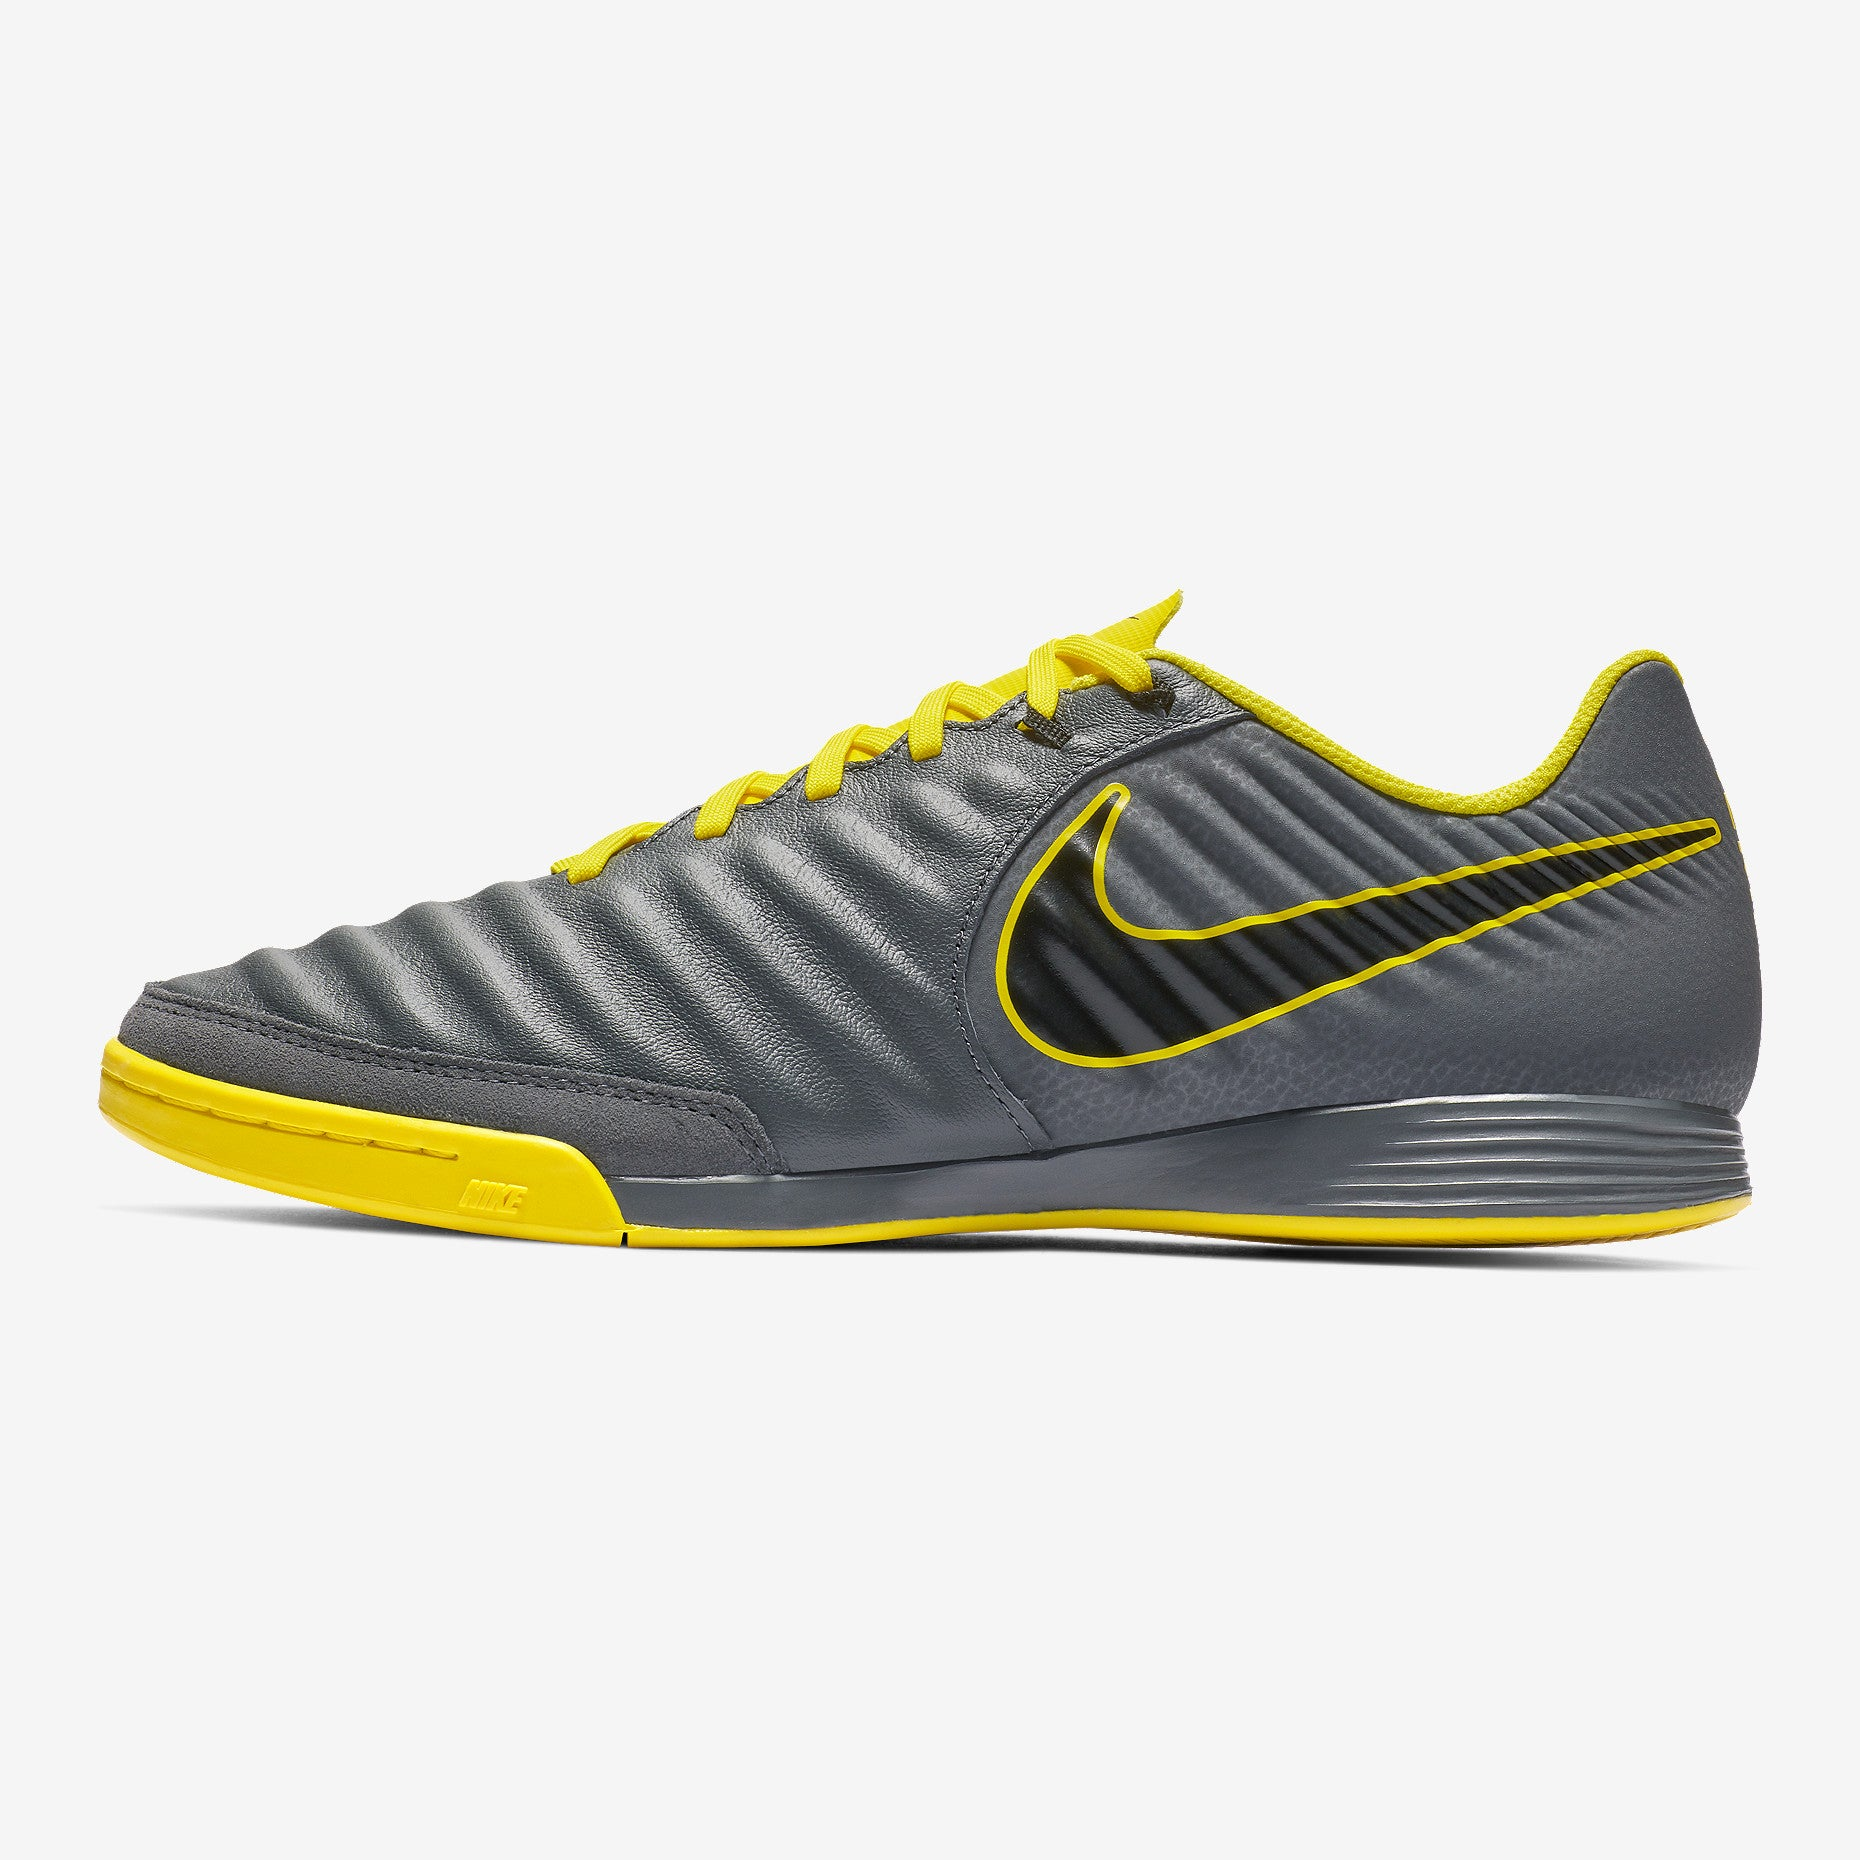 e8300fa82517a0 Men s Nike LegendX 7 Academy IC